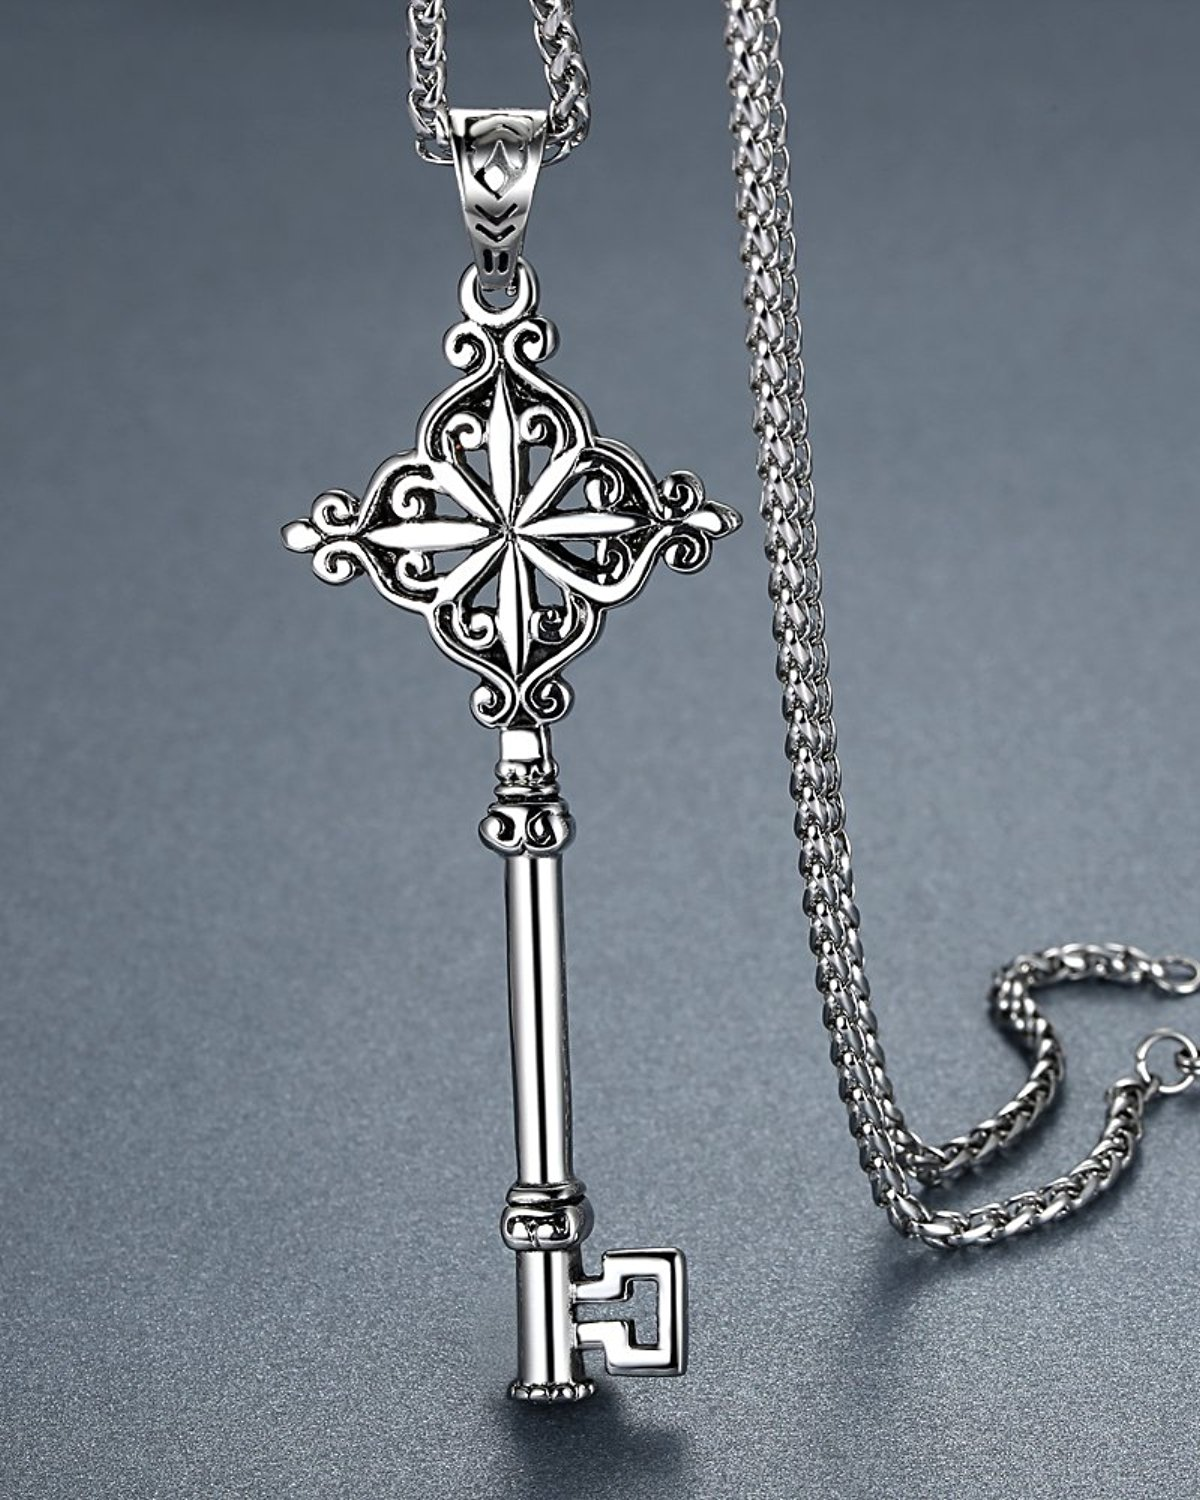 stainless key pendant necklace